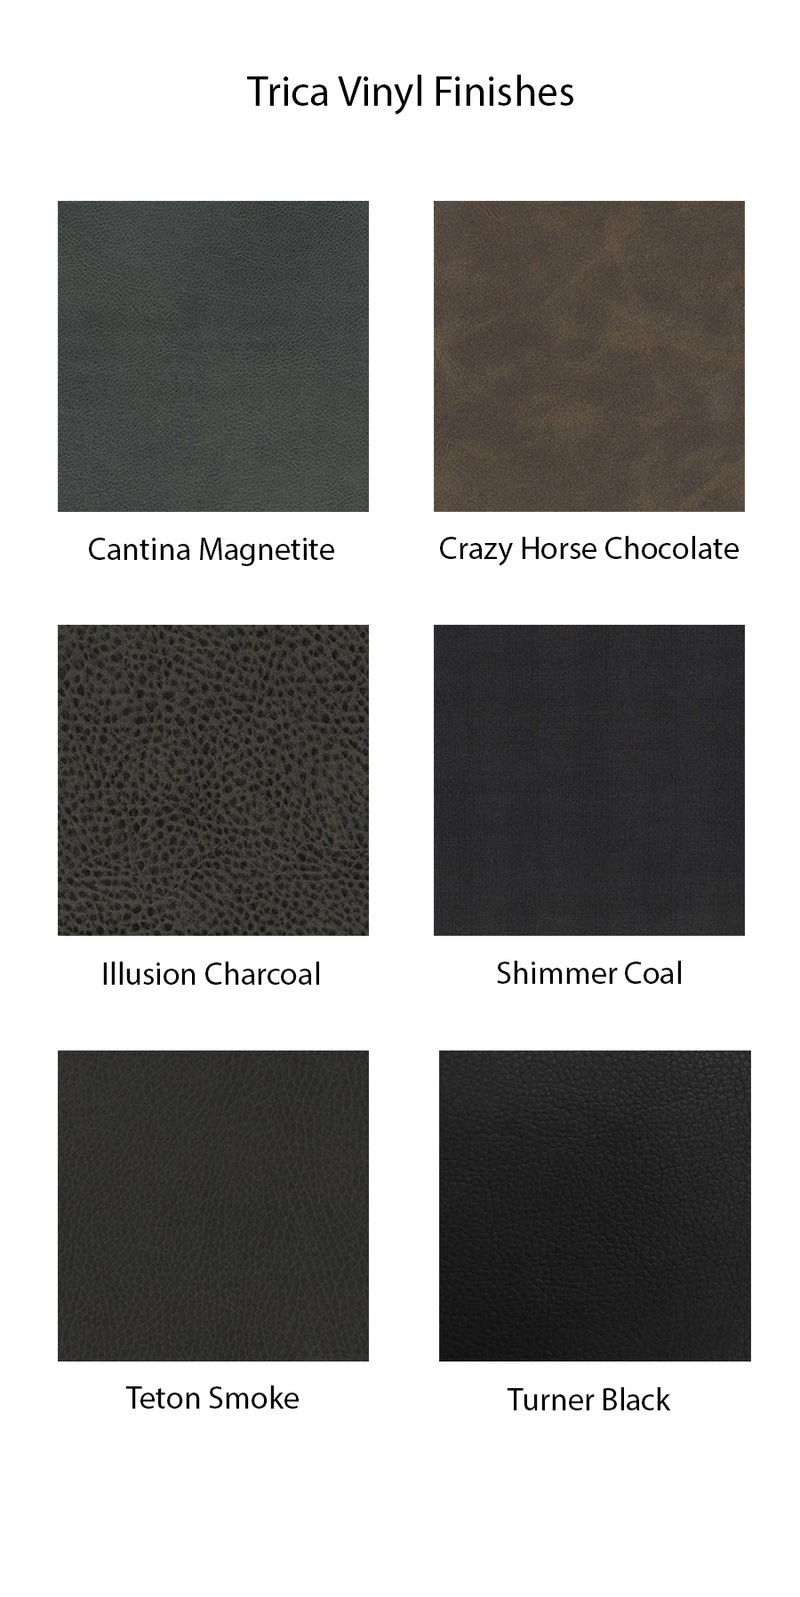 products/vinyl-finishes-trica_31342d90-dd6a-42f7-b1f0-725d7e7d5cbb.jpg